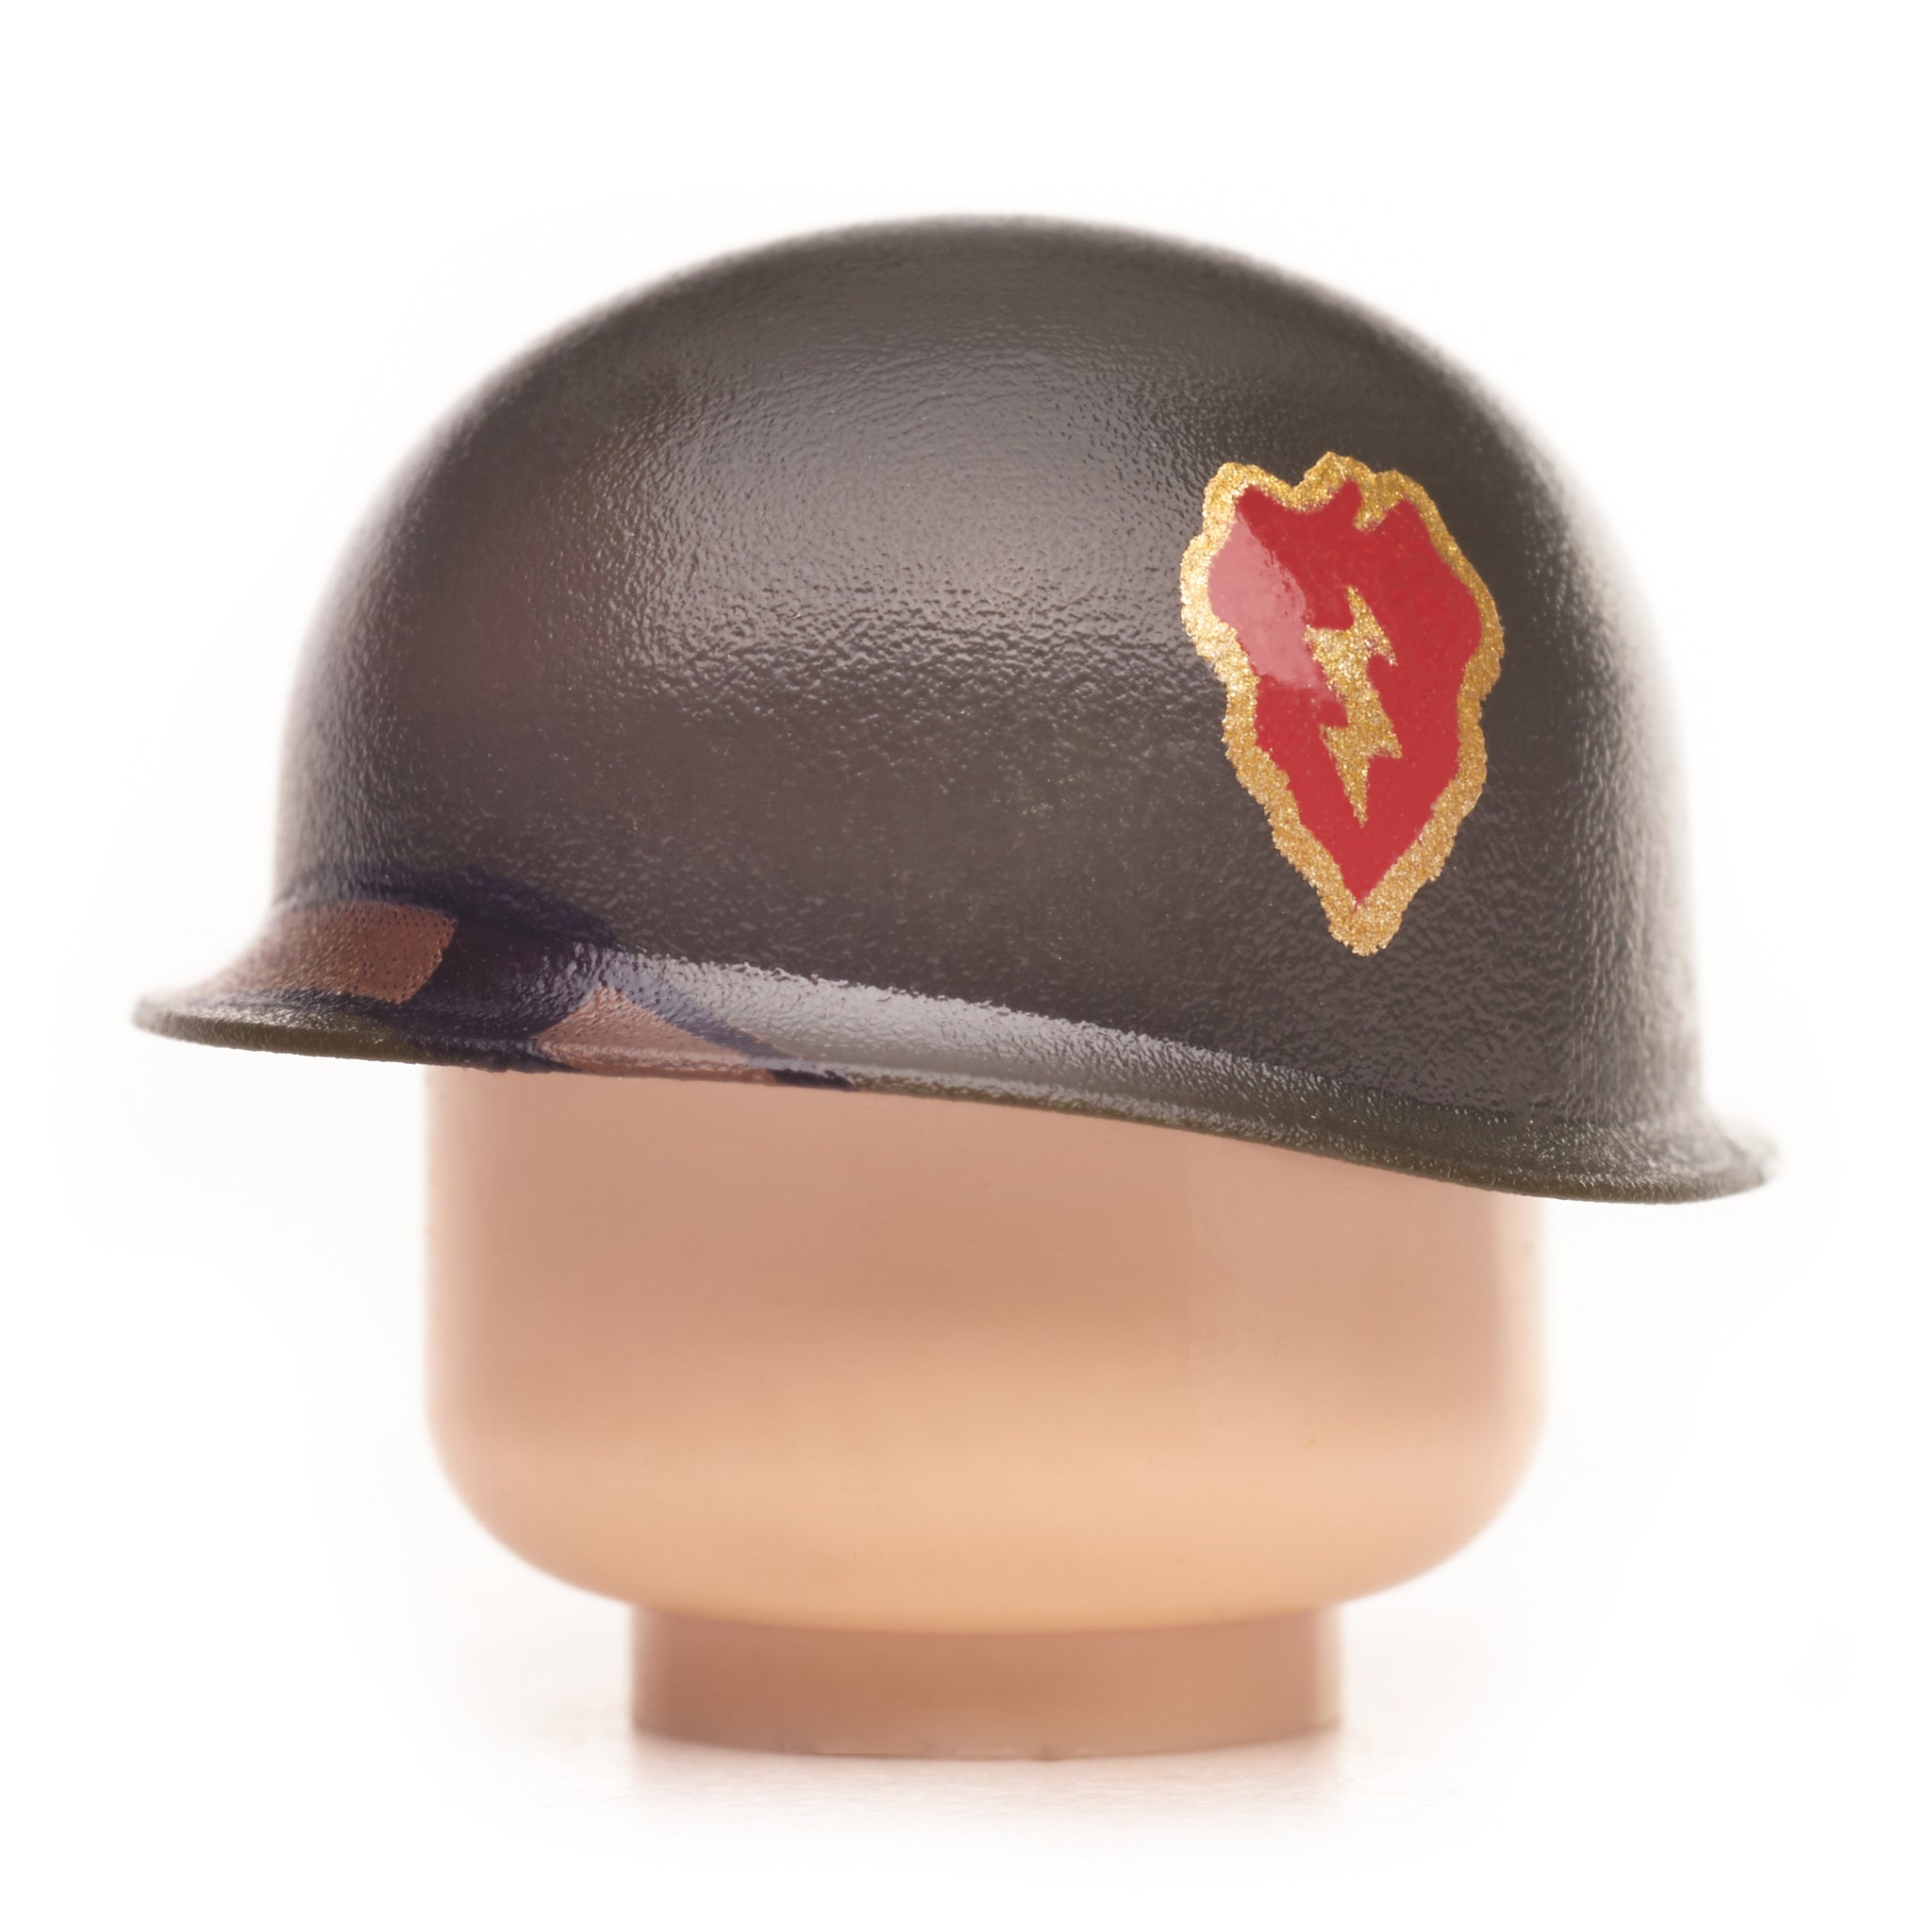 25th Infantry Division M1 Helmet